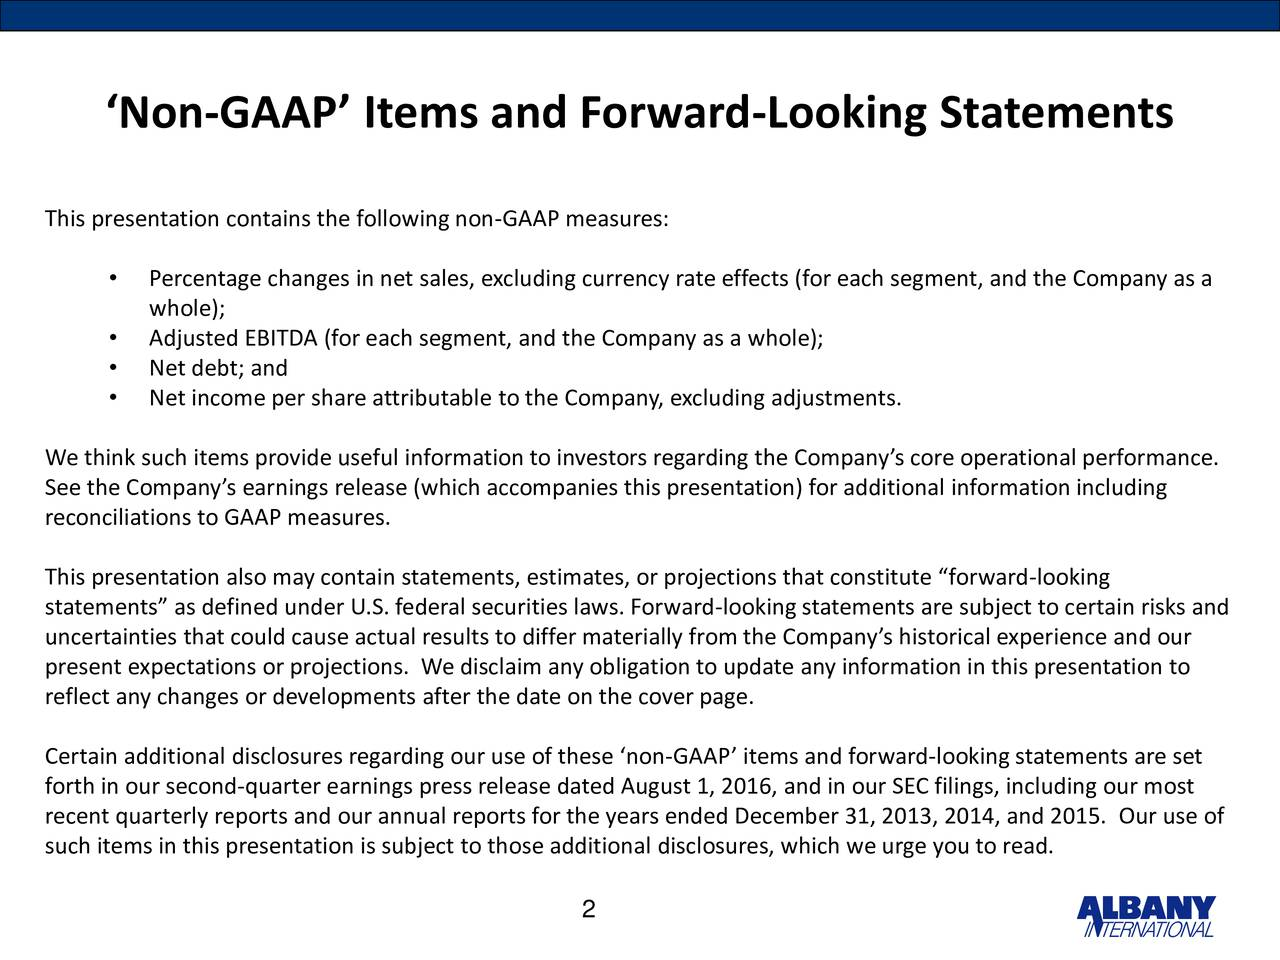 This presentation contains the following non-GAAP measures: Percentage changes in net sales, excluding currency rate effects (for each segment, and the Company as a whole); Adjusted EBITDA (for each segment, and the Company as a whole); Net debt; and Net income per share attributable to the Company, excluding adjustments. We think such items provide useful information to investors regarding the Companys core operational performance. See the Companys earnings release (which accompanies this presentation) for additional information including reconciliations to GAAP measures. This presentation also may contain statements, estimates, or projections that constitute forward-looking statements as defined under U.S. federal securities laws. Forward-looking statements are subject to certain risks and uncertainties that could cause actual results to differ materially from the Companys historical experience and our present expectations or projections. We disclaim any obligation to update any information in this presentation to reflect any changes or developments after the date on the cover page. Certain additional disclosures regarding our use of these non-GAAP items and forward-looking statements are set forth in our second-quarter earnings press release dated August 1, 2016, and in our SEC filings, including our most recent quarterly reports and our annual reports for the years ended December 31, 2013, 2014, and 2015. Our use of such items in this presentation is subject to those additional disclosures, which we urge you to read. 2